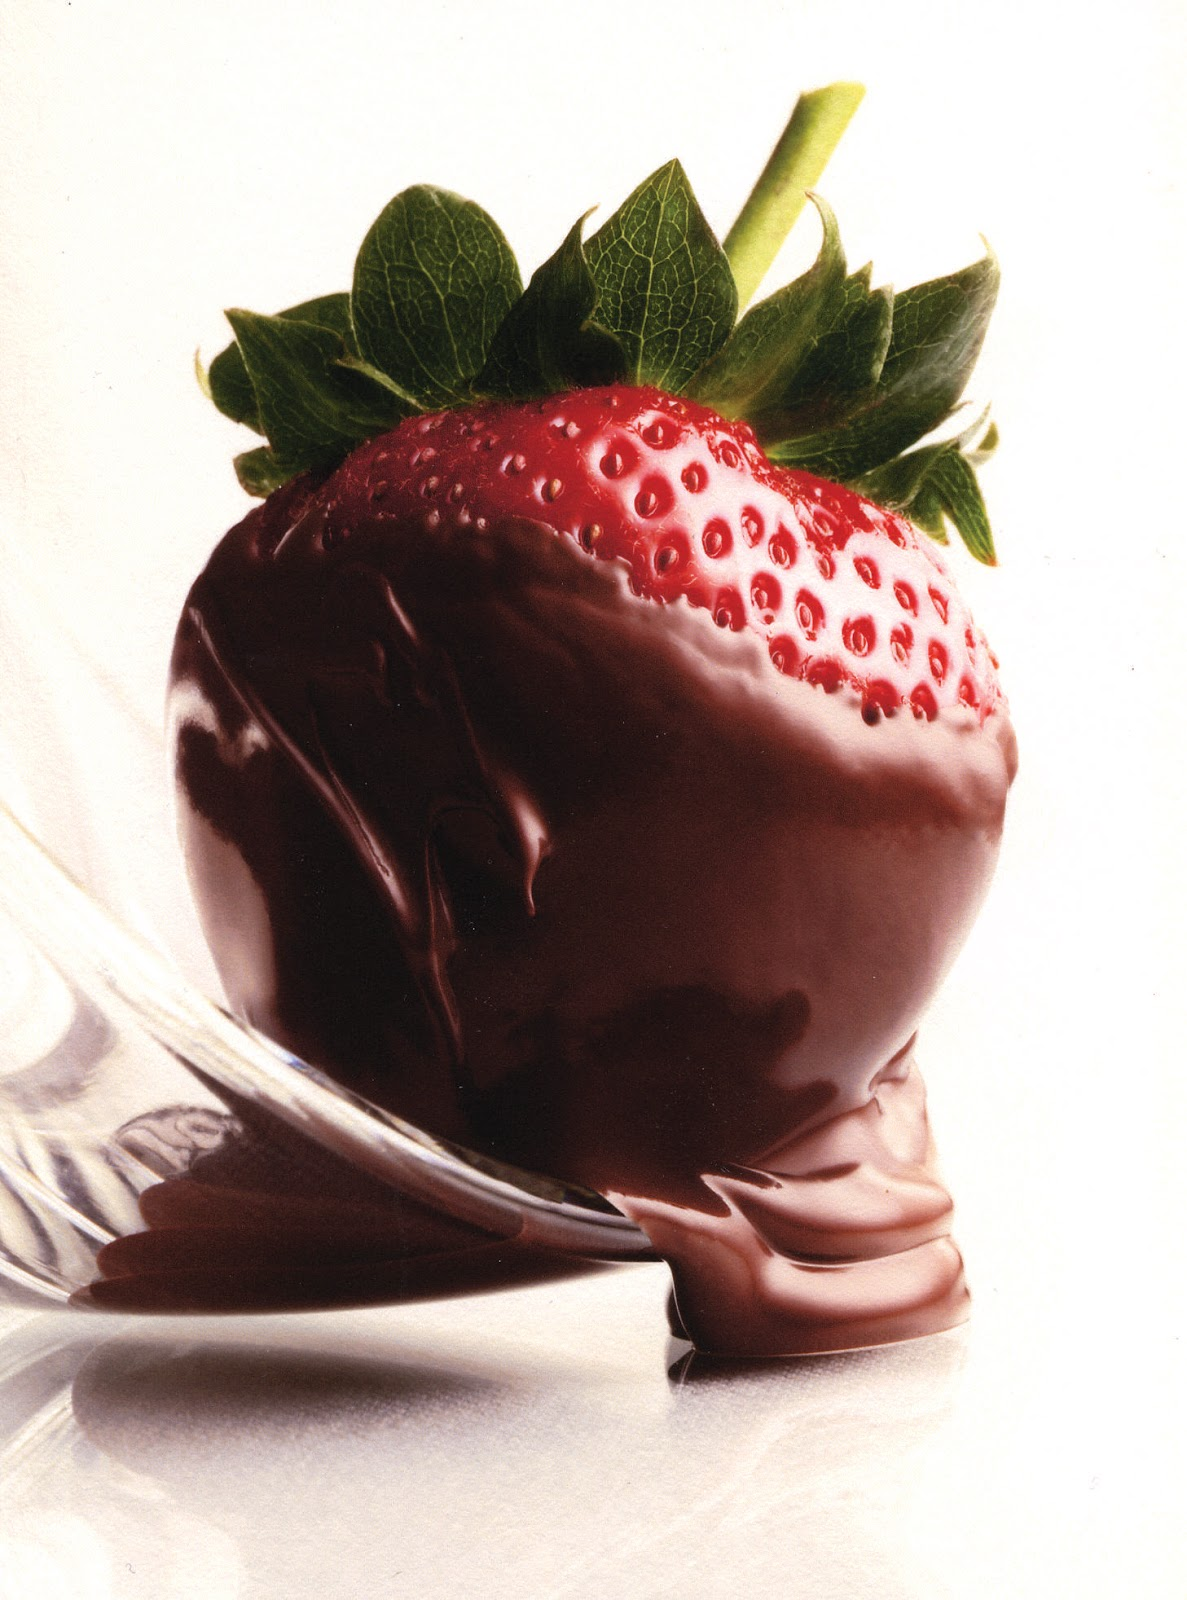 How To Order Chocolate Covered Strawberries